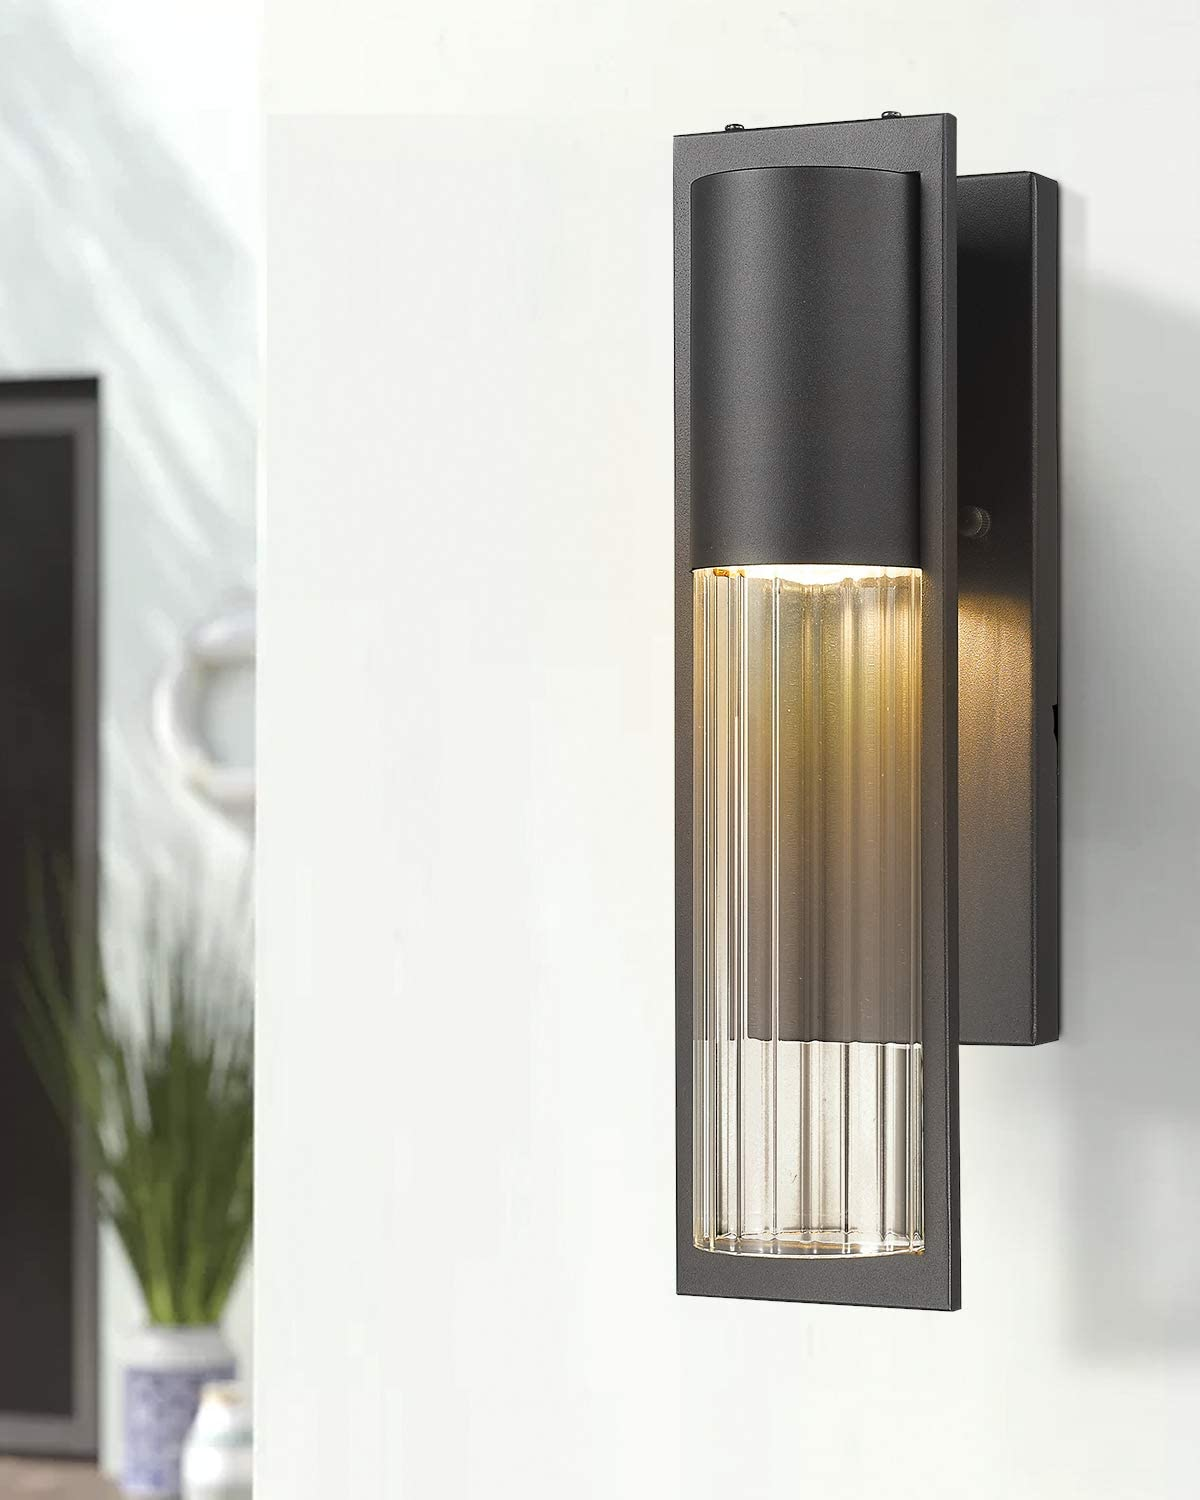 MB9003-1PK Beionxii Outdoor Wall Sconce Transitional One Light Exterior Wall Mount Lights in Sand Textured Black Finish with Clear Ribbed Glass